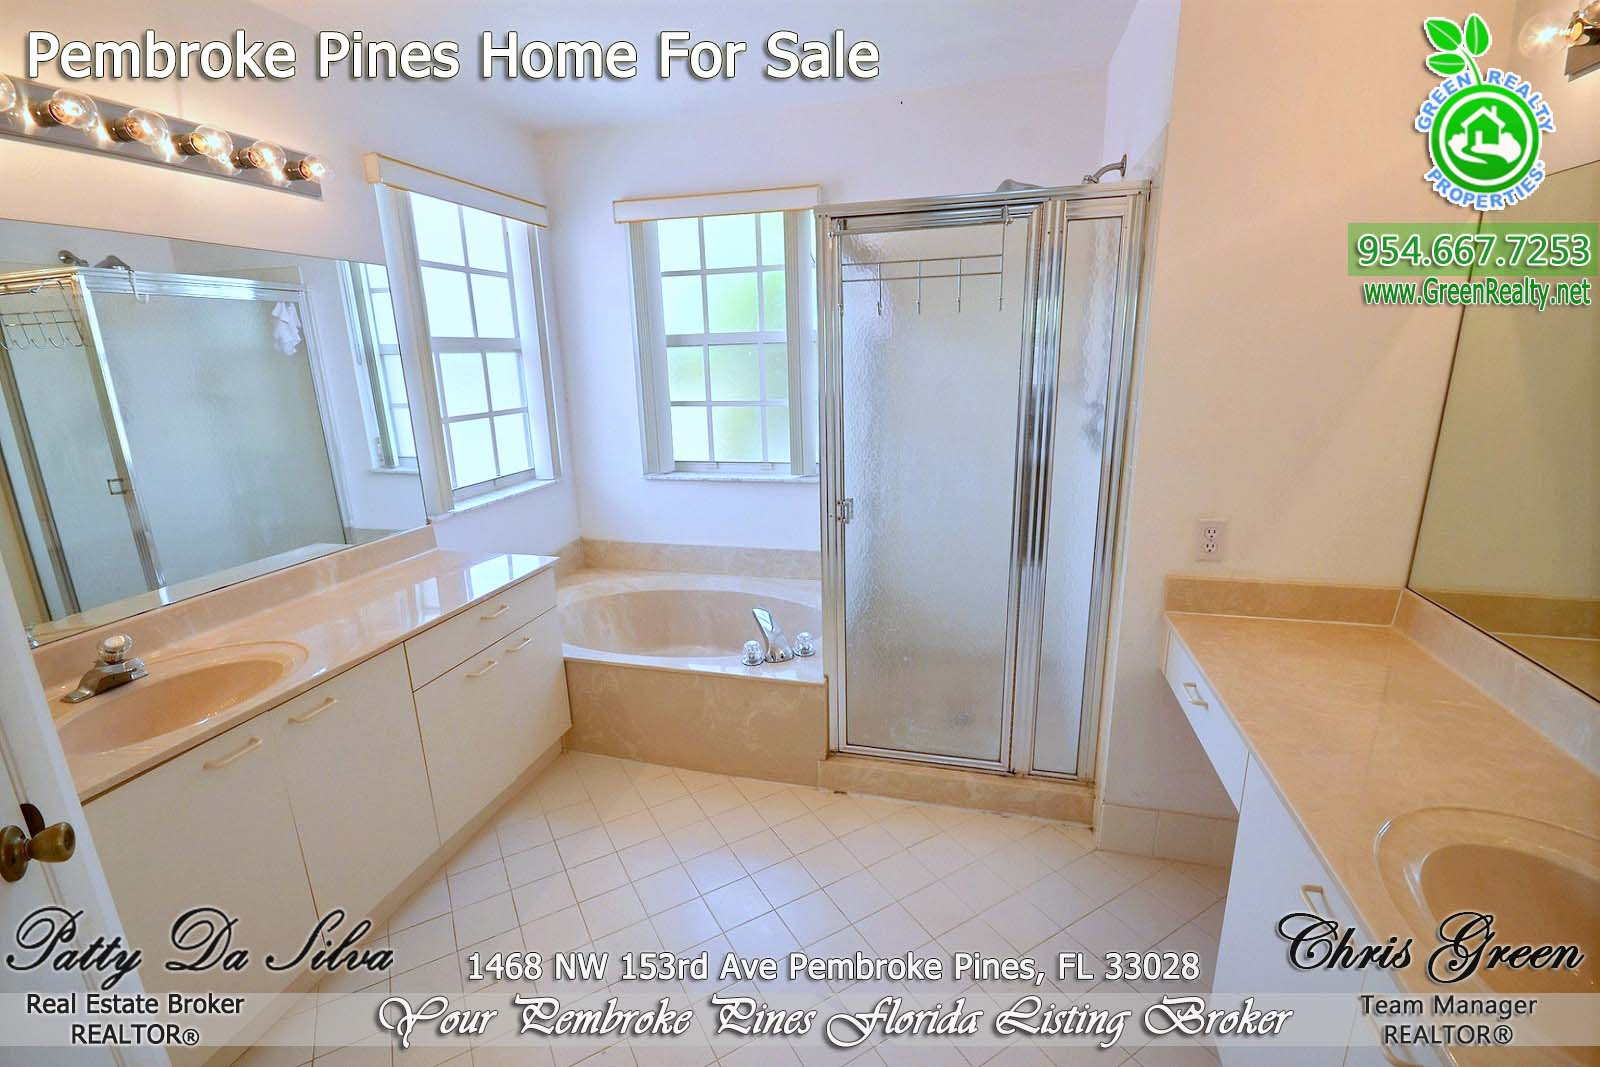 19 Patty Da SIlva SELLS Pembroke Pines Homes (4)